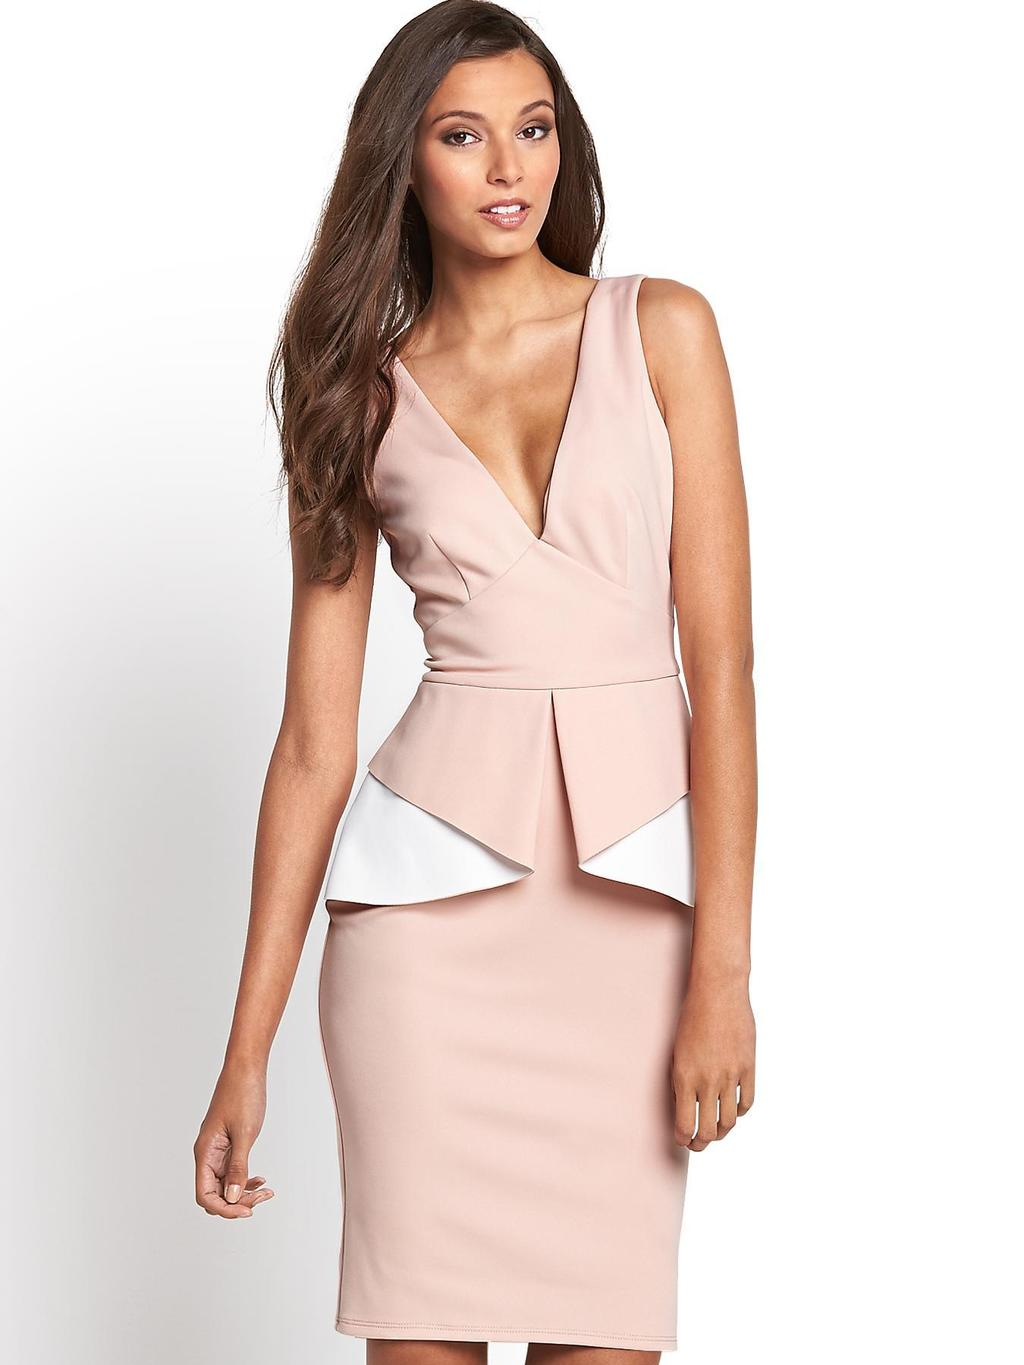 Peplum Scuba Dress, Pink - style: shift; neckline: plunge; fit: tight; sleeve style: sleeveless; waist detail: peplum waist detail; secondary colour: white; predominant colour: blush; occasions: evening, occasion; length: just above the knee; fibres: polyester/polyamide - 100%; sleeve length: sleeveless; texture group: crepes; hip detail: ruffles/tiers/tie detail at hip; pattern type: fabric; pattern size: standard; pattern: colourblock; trends: sorbet shades; season: s/s 2014